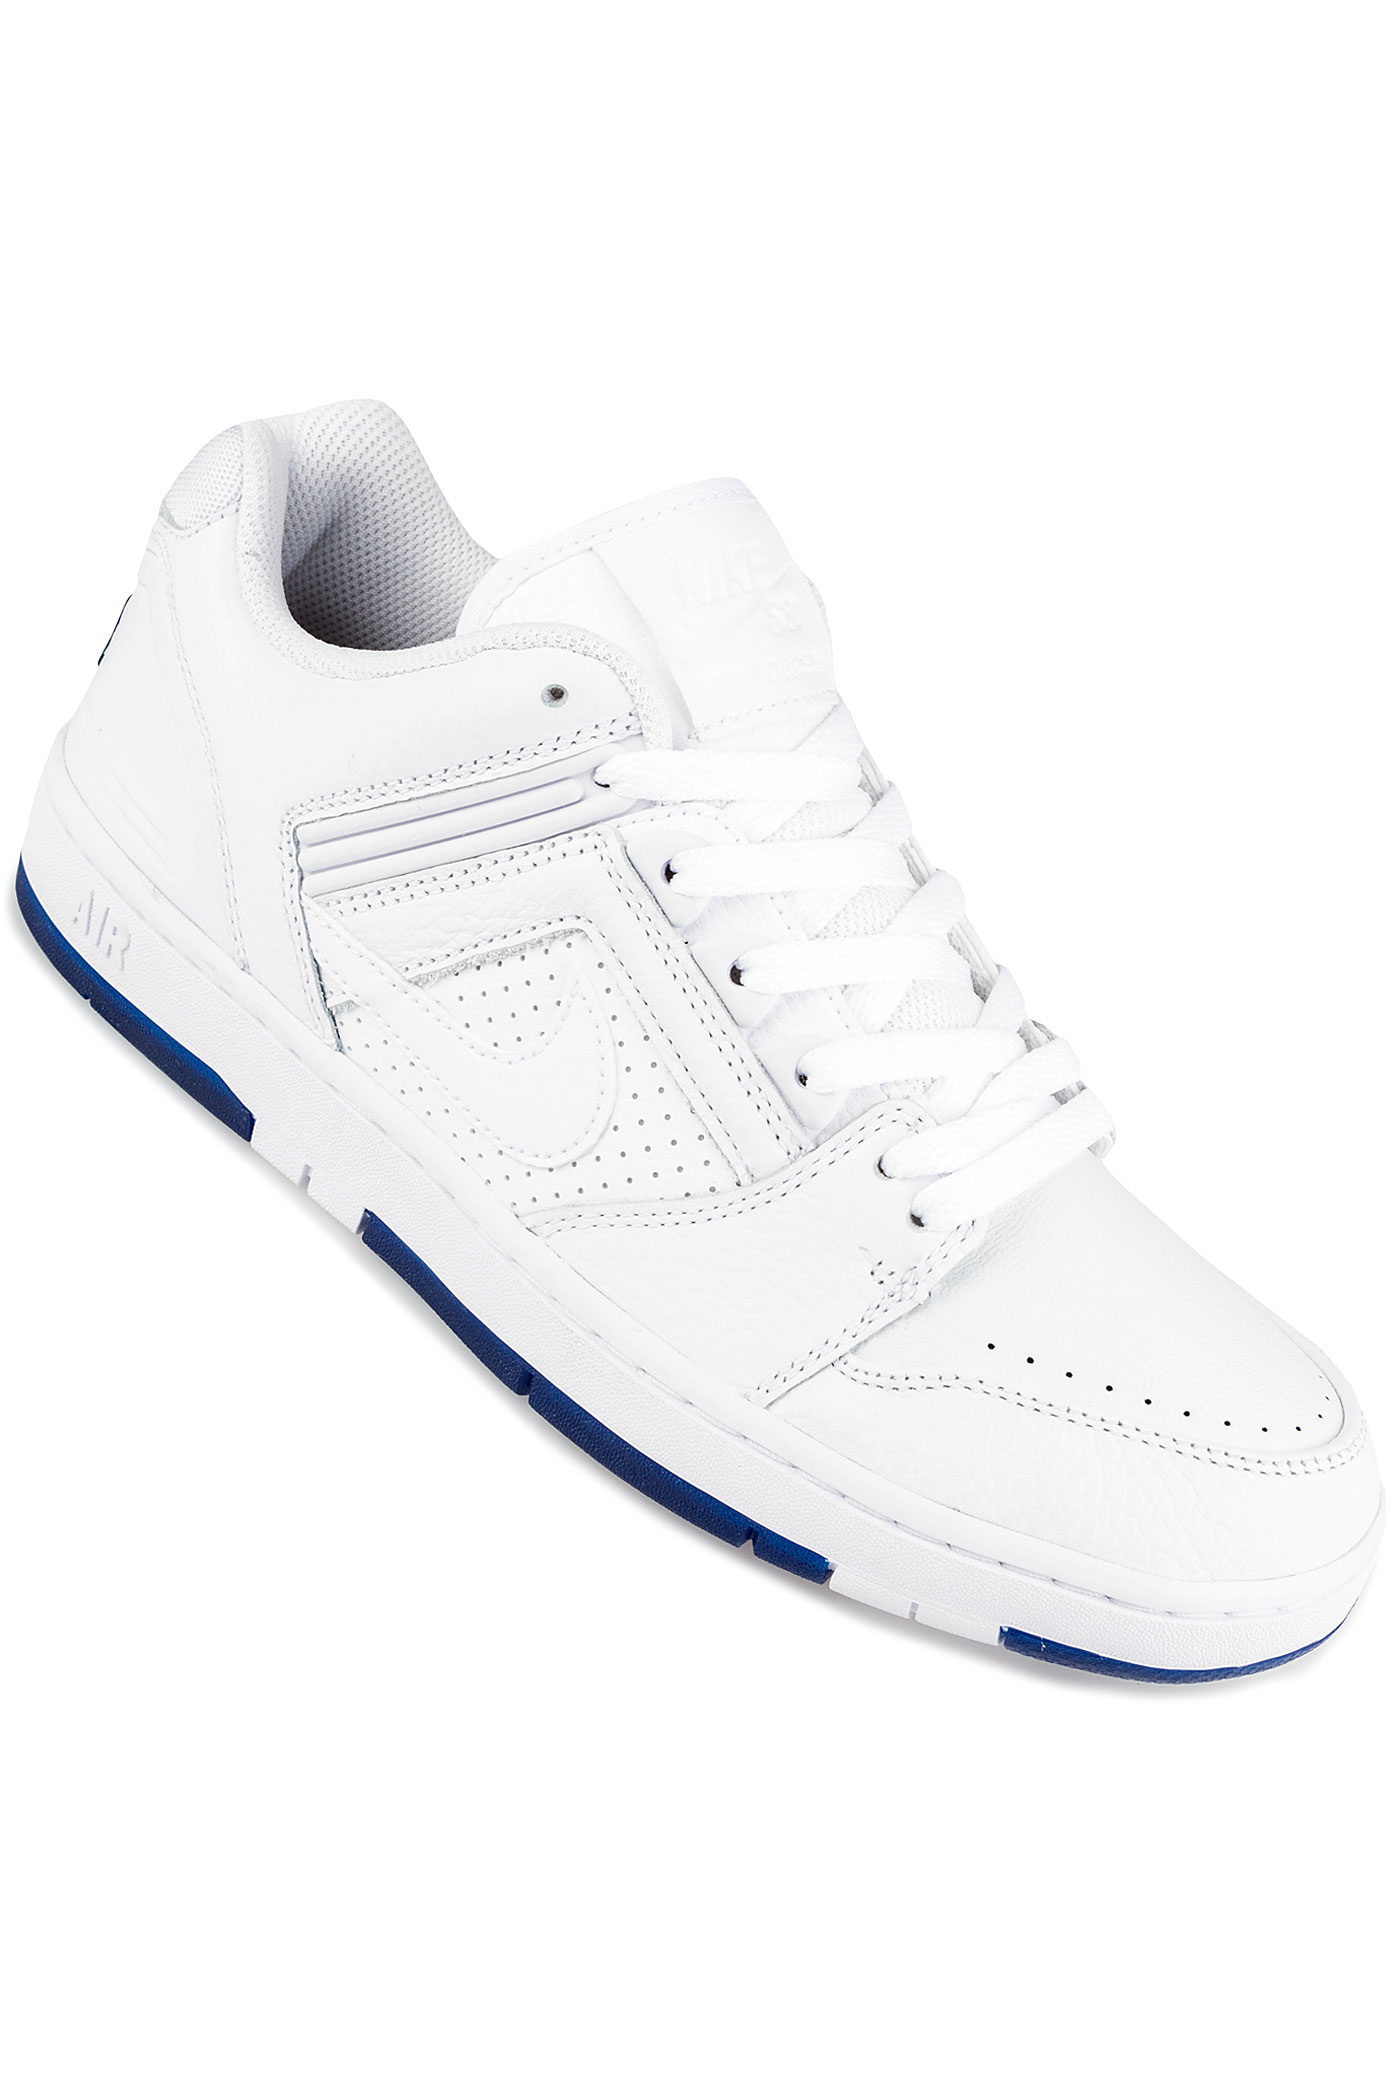 competitive price f2989 9d271 Nike SB Air Force II Low Kevin Bradley QS Shoes (white white blue void)